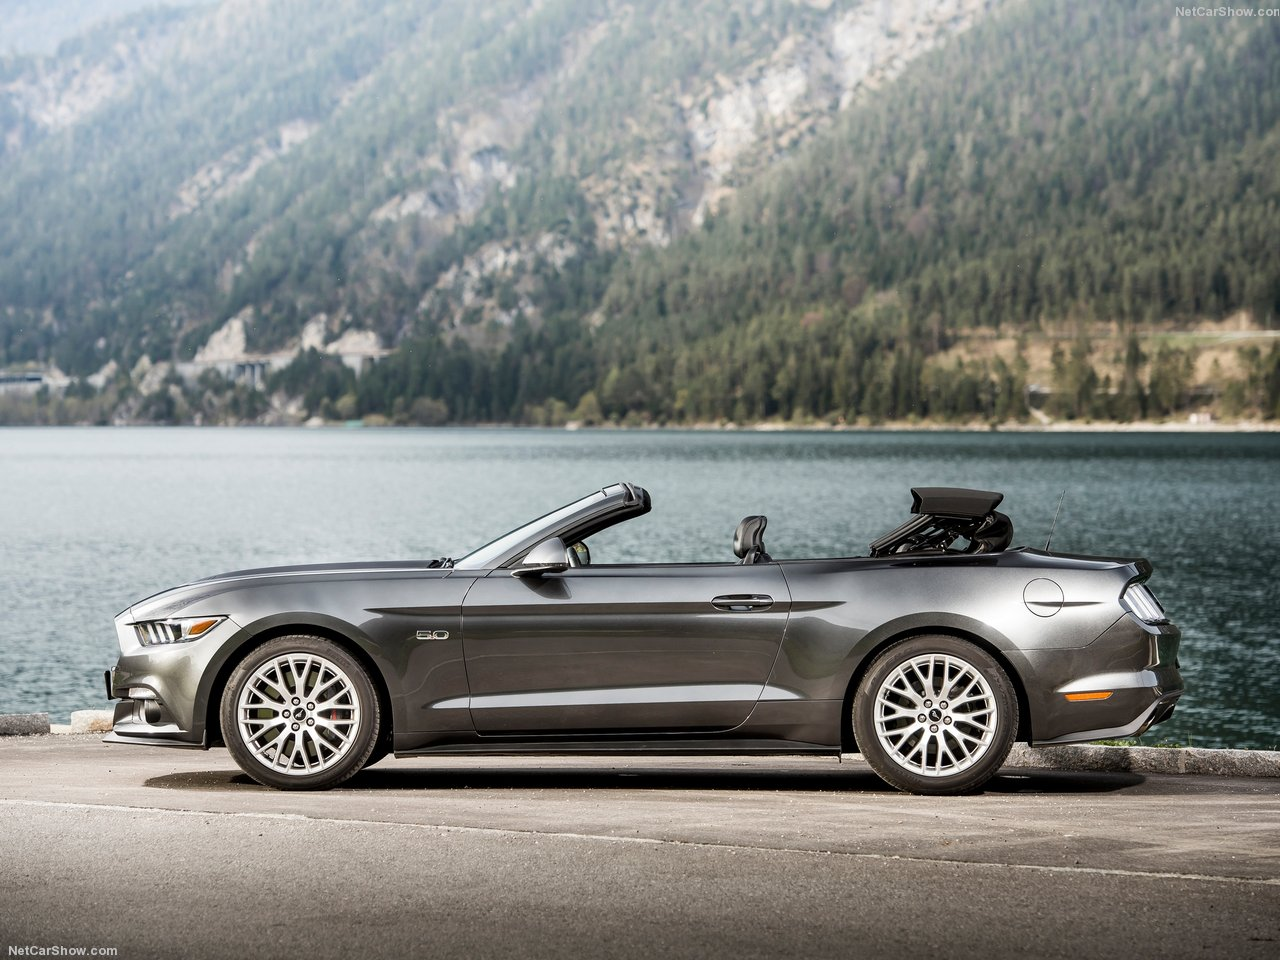 Ford Mustang Convertible EU-Version photo 142104